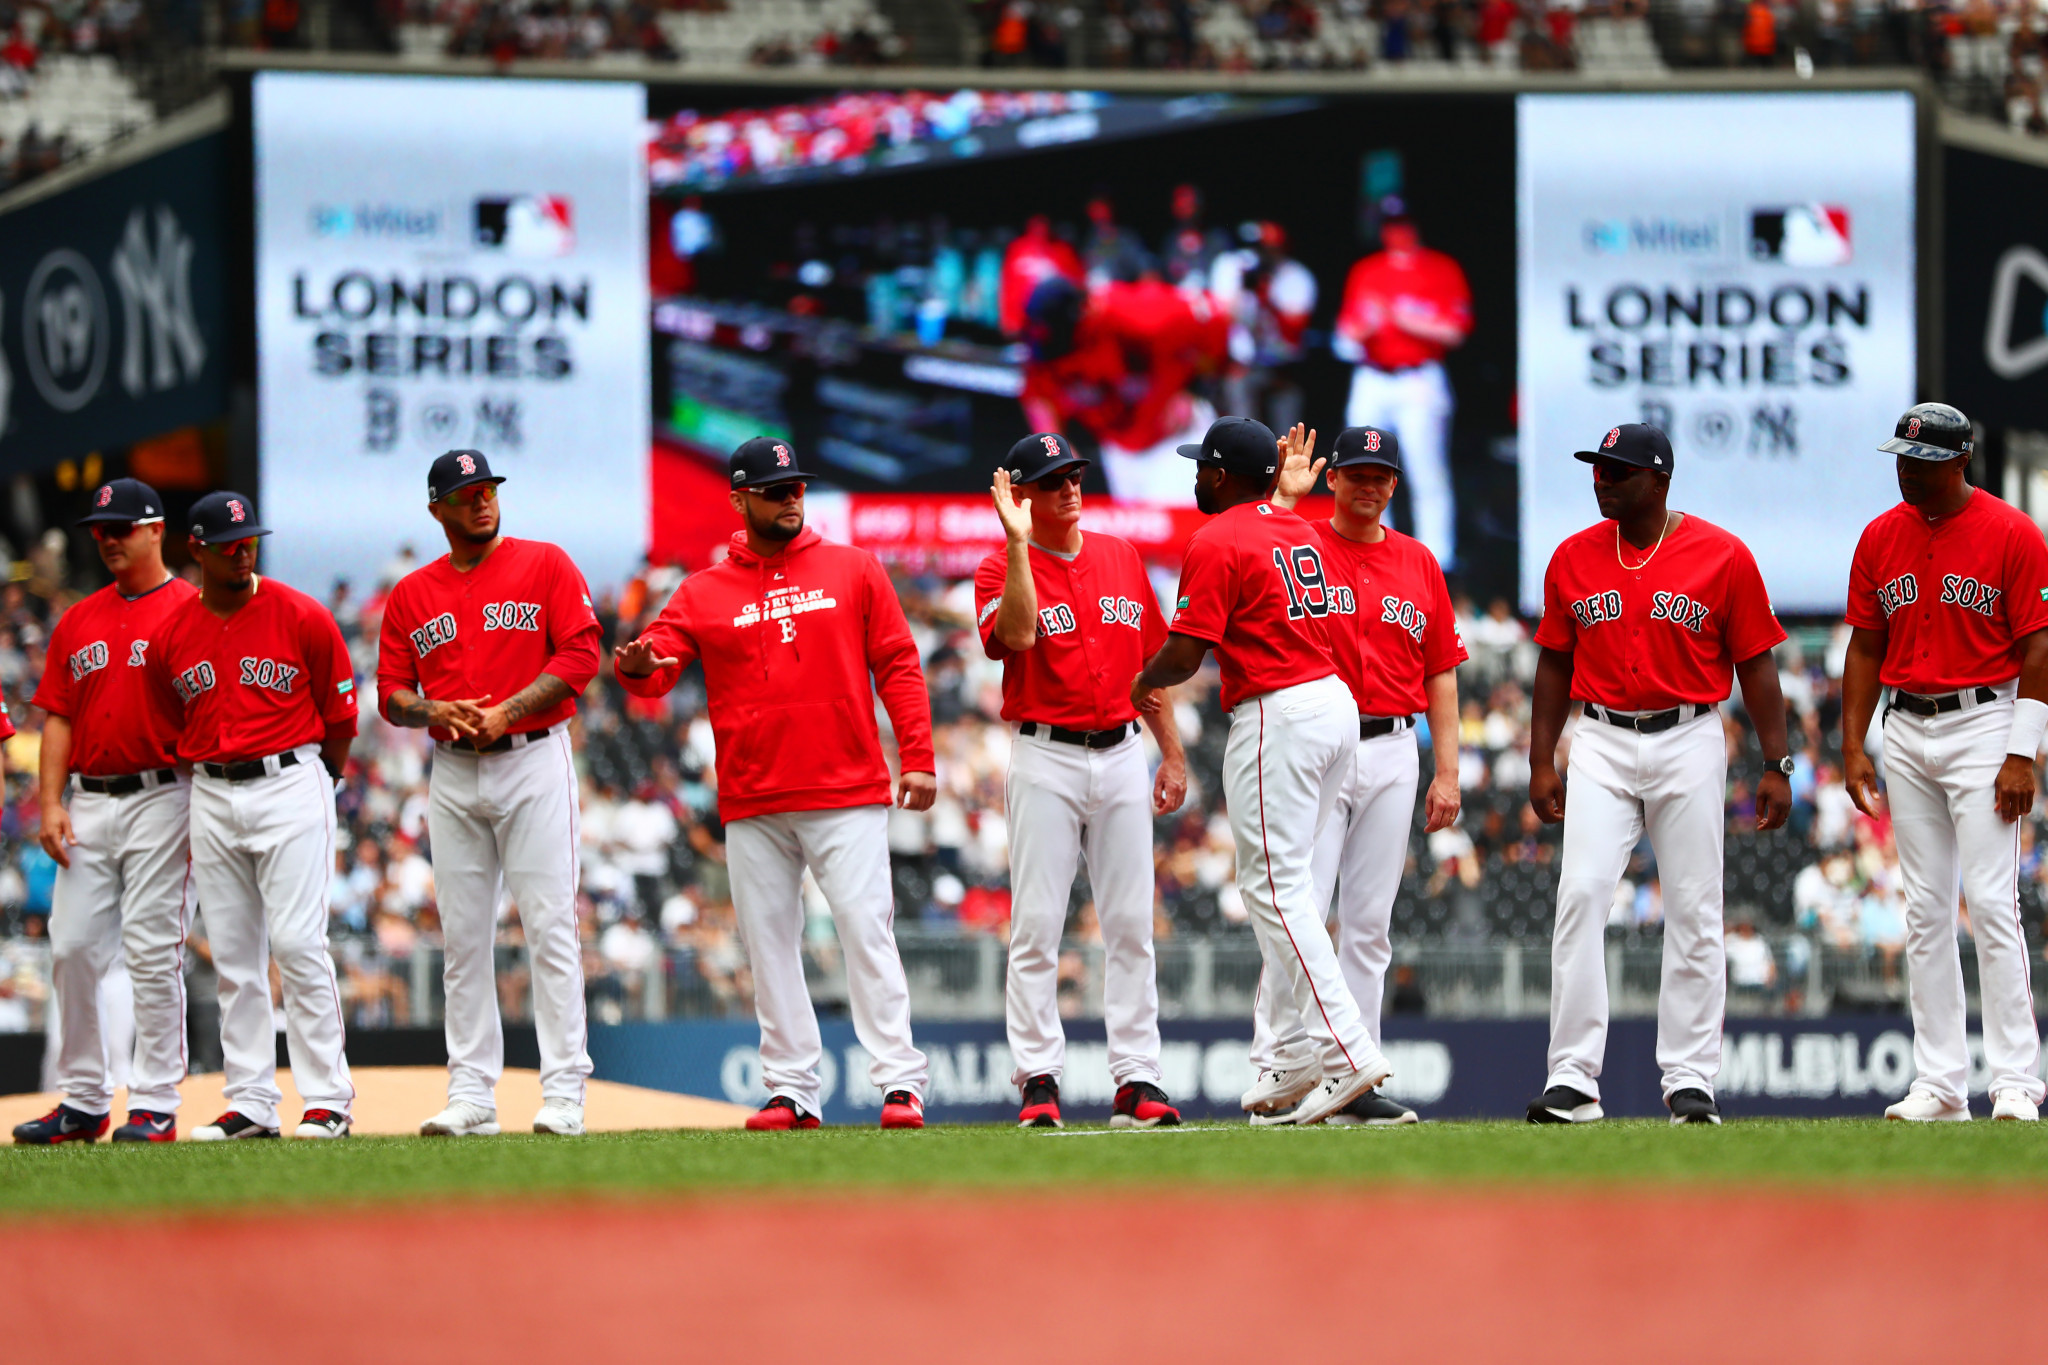 The London Series saw the first regular season MLB matches in Europe ©Getty Images